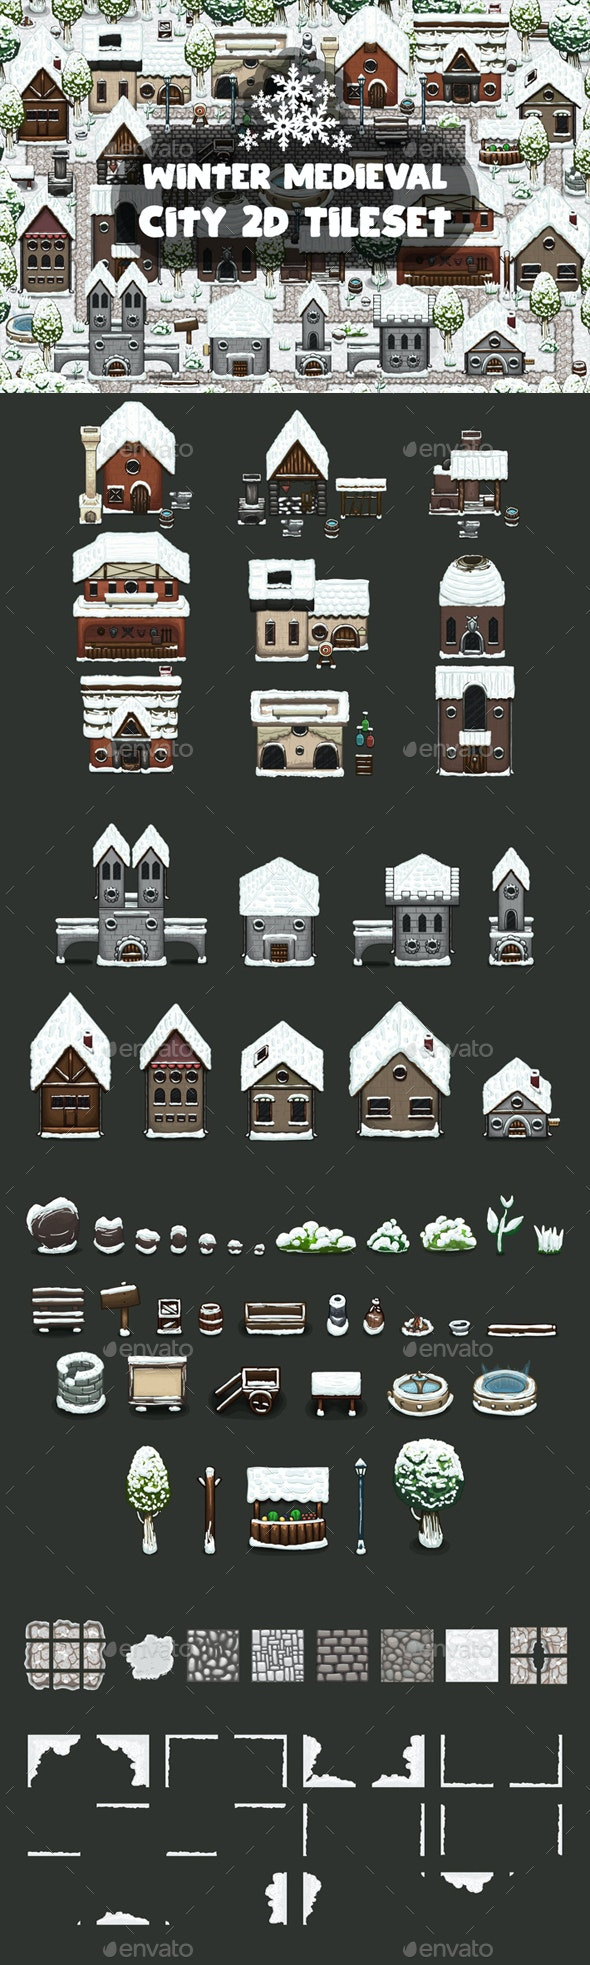 Winter Medieval City Game Tileset - Tilesets Game Assets